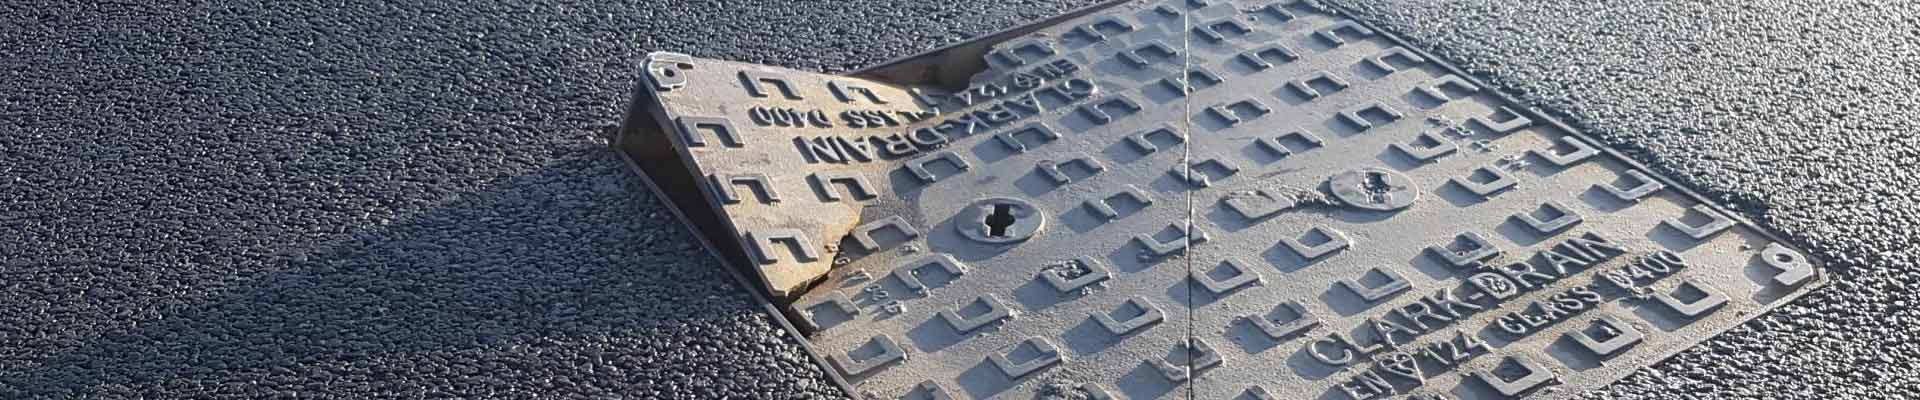 damaged manhole cover